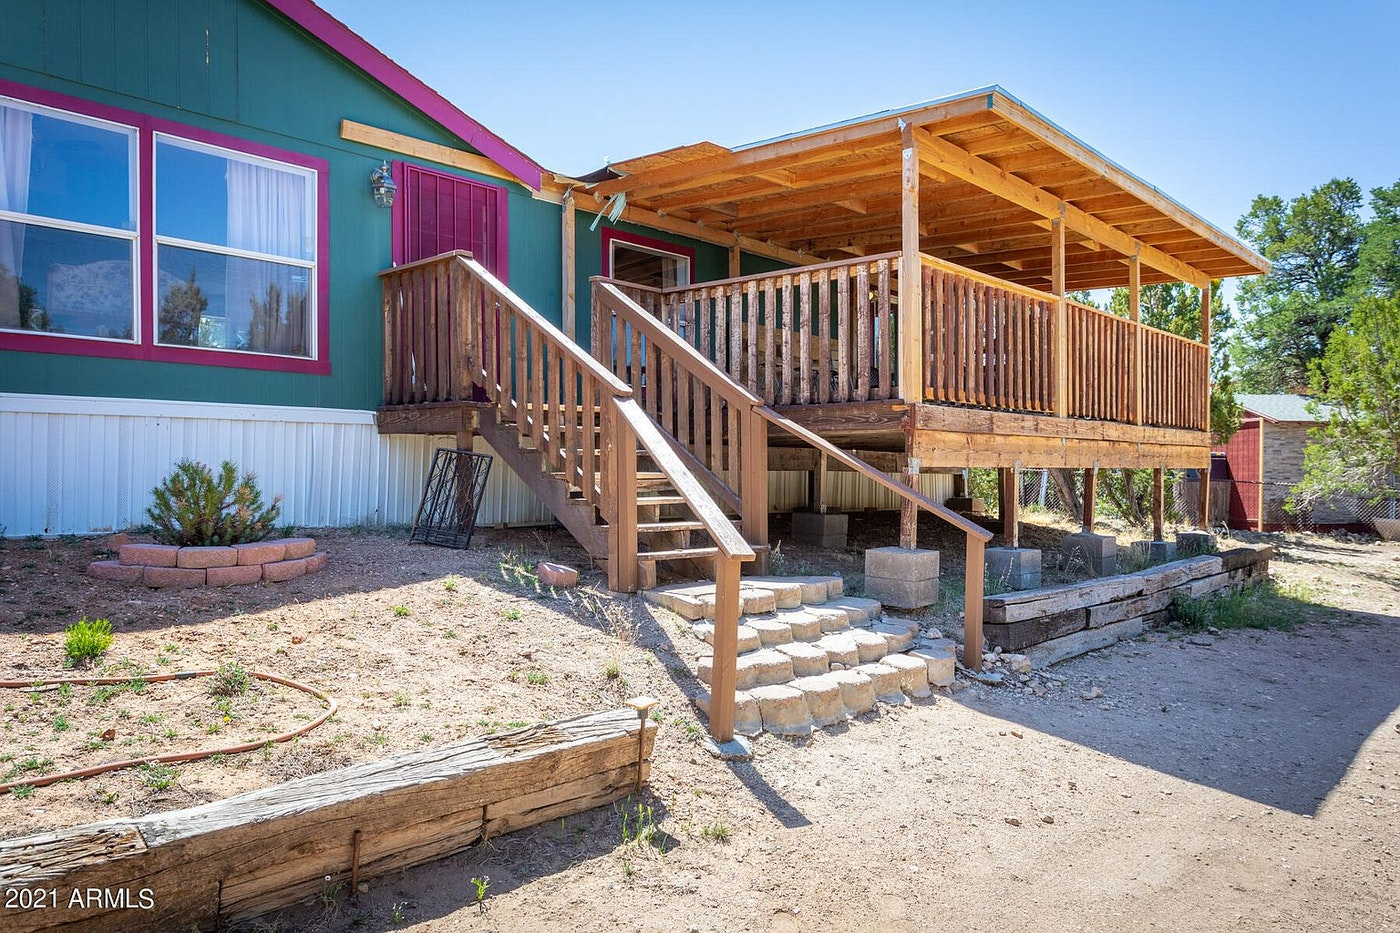 front of a home with teal and magenta paint and a large wooden outdoor covered deck